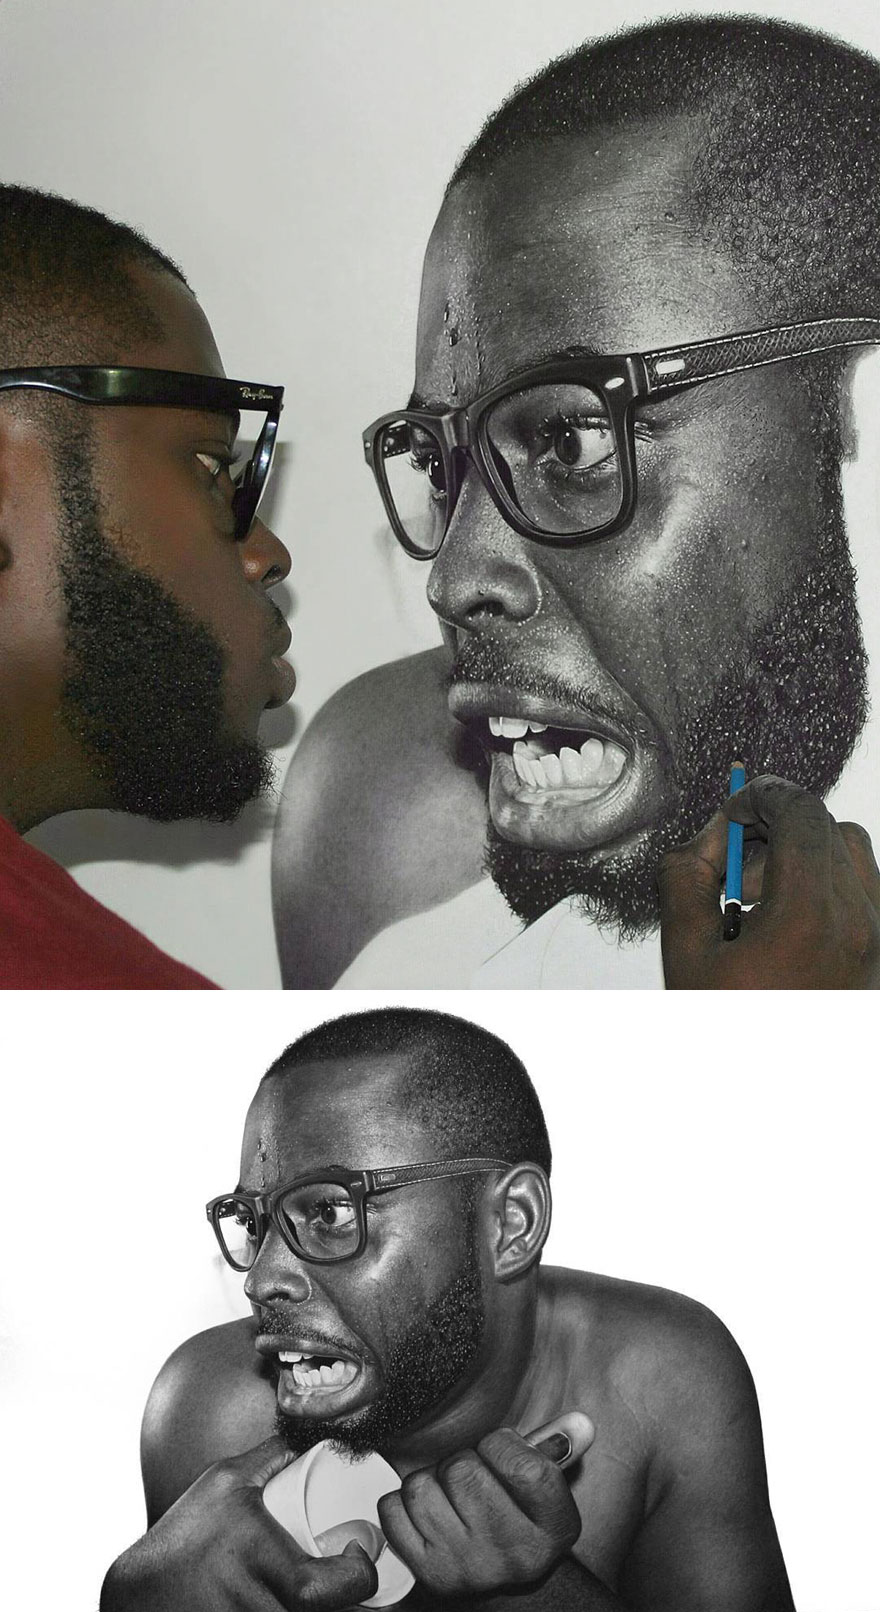 hyperrealism-pencil-portraits-arinze-stanley-10-58d28c20858af__880-2